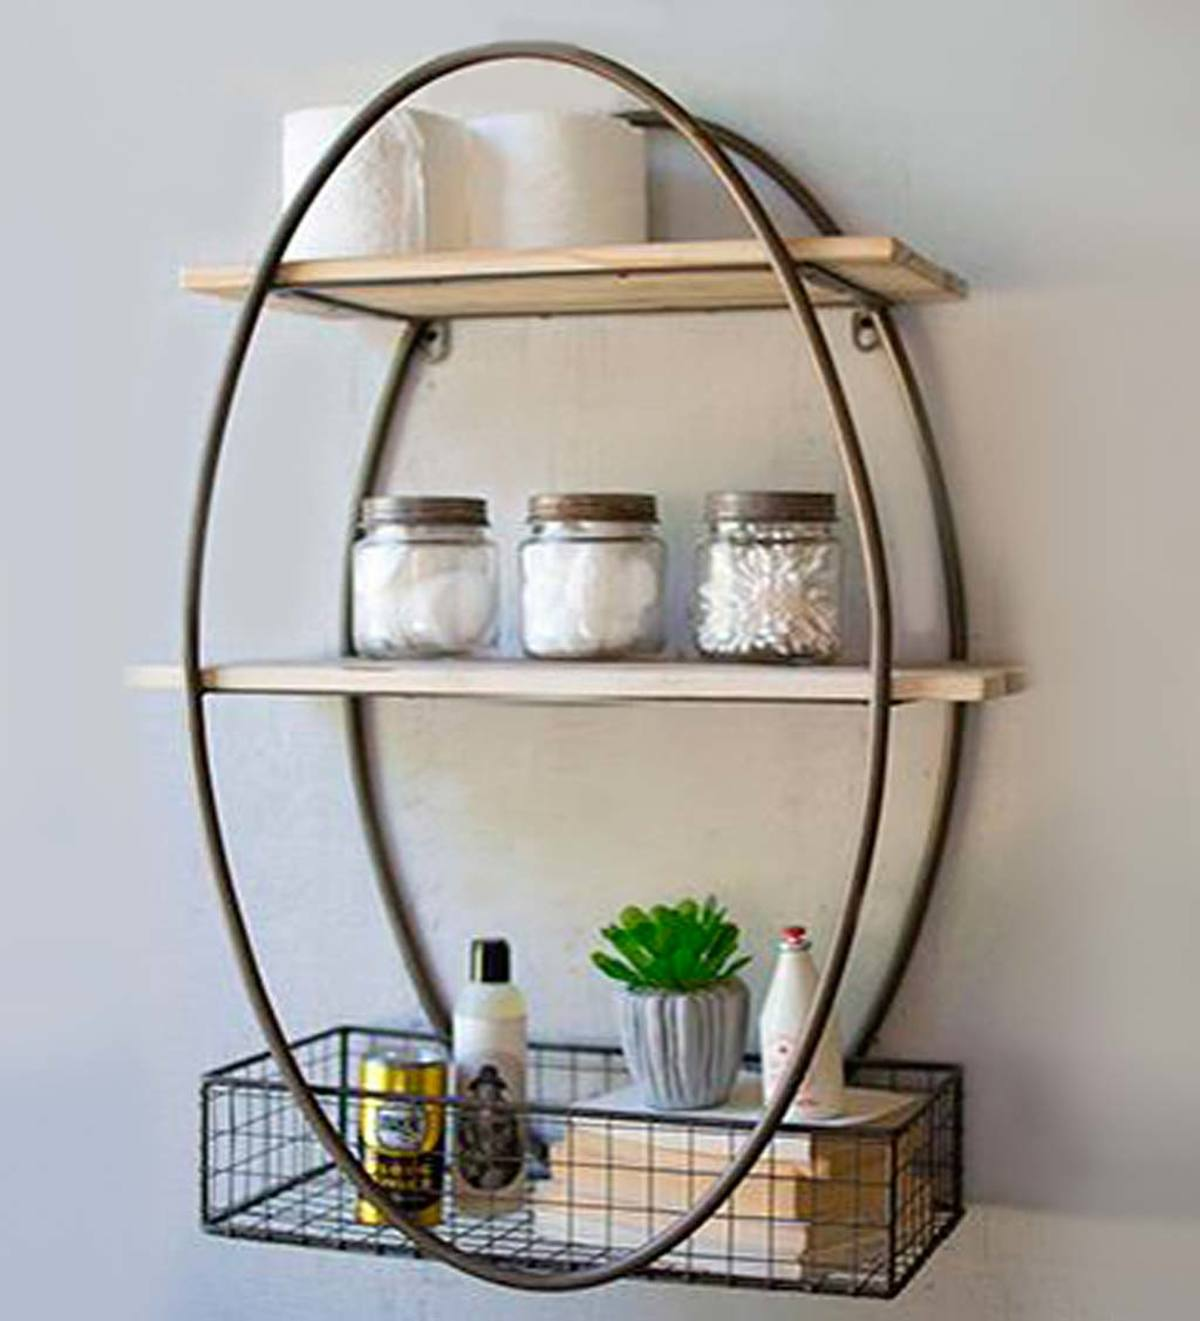 Oval Metal Wall Unit with Recycled Wood Shelves